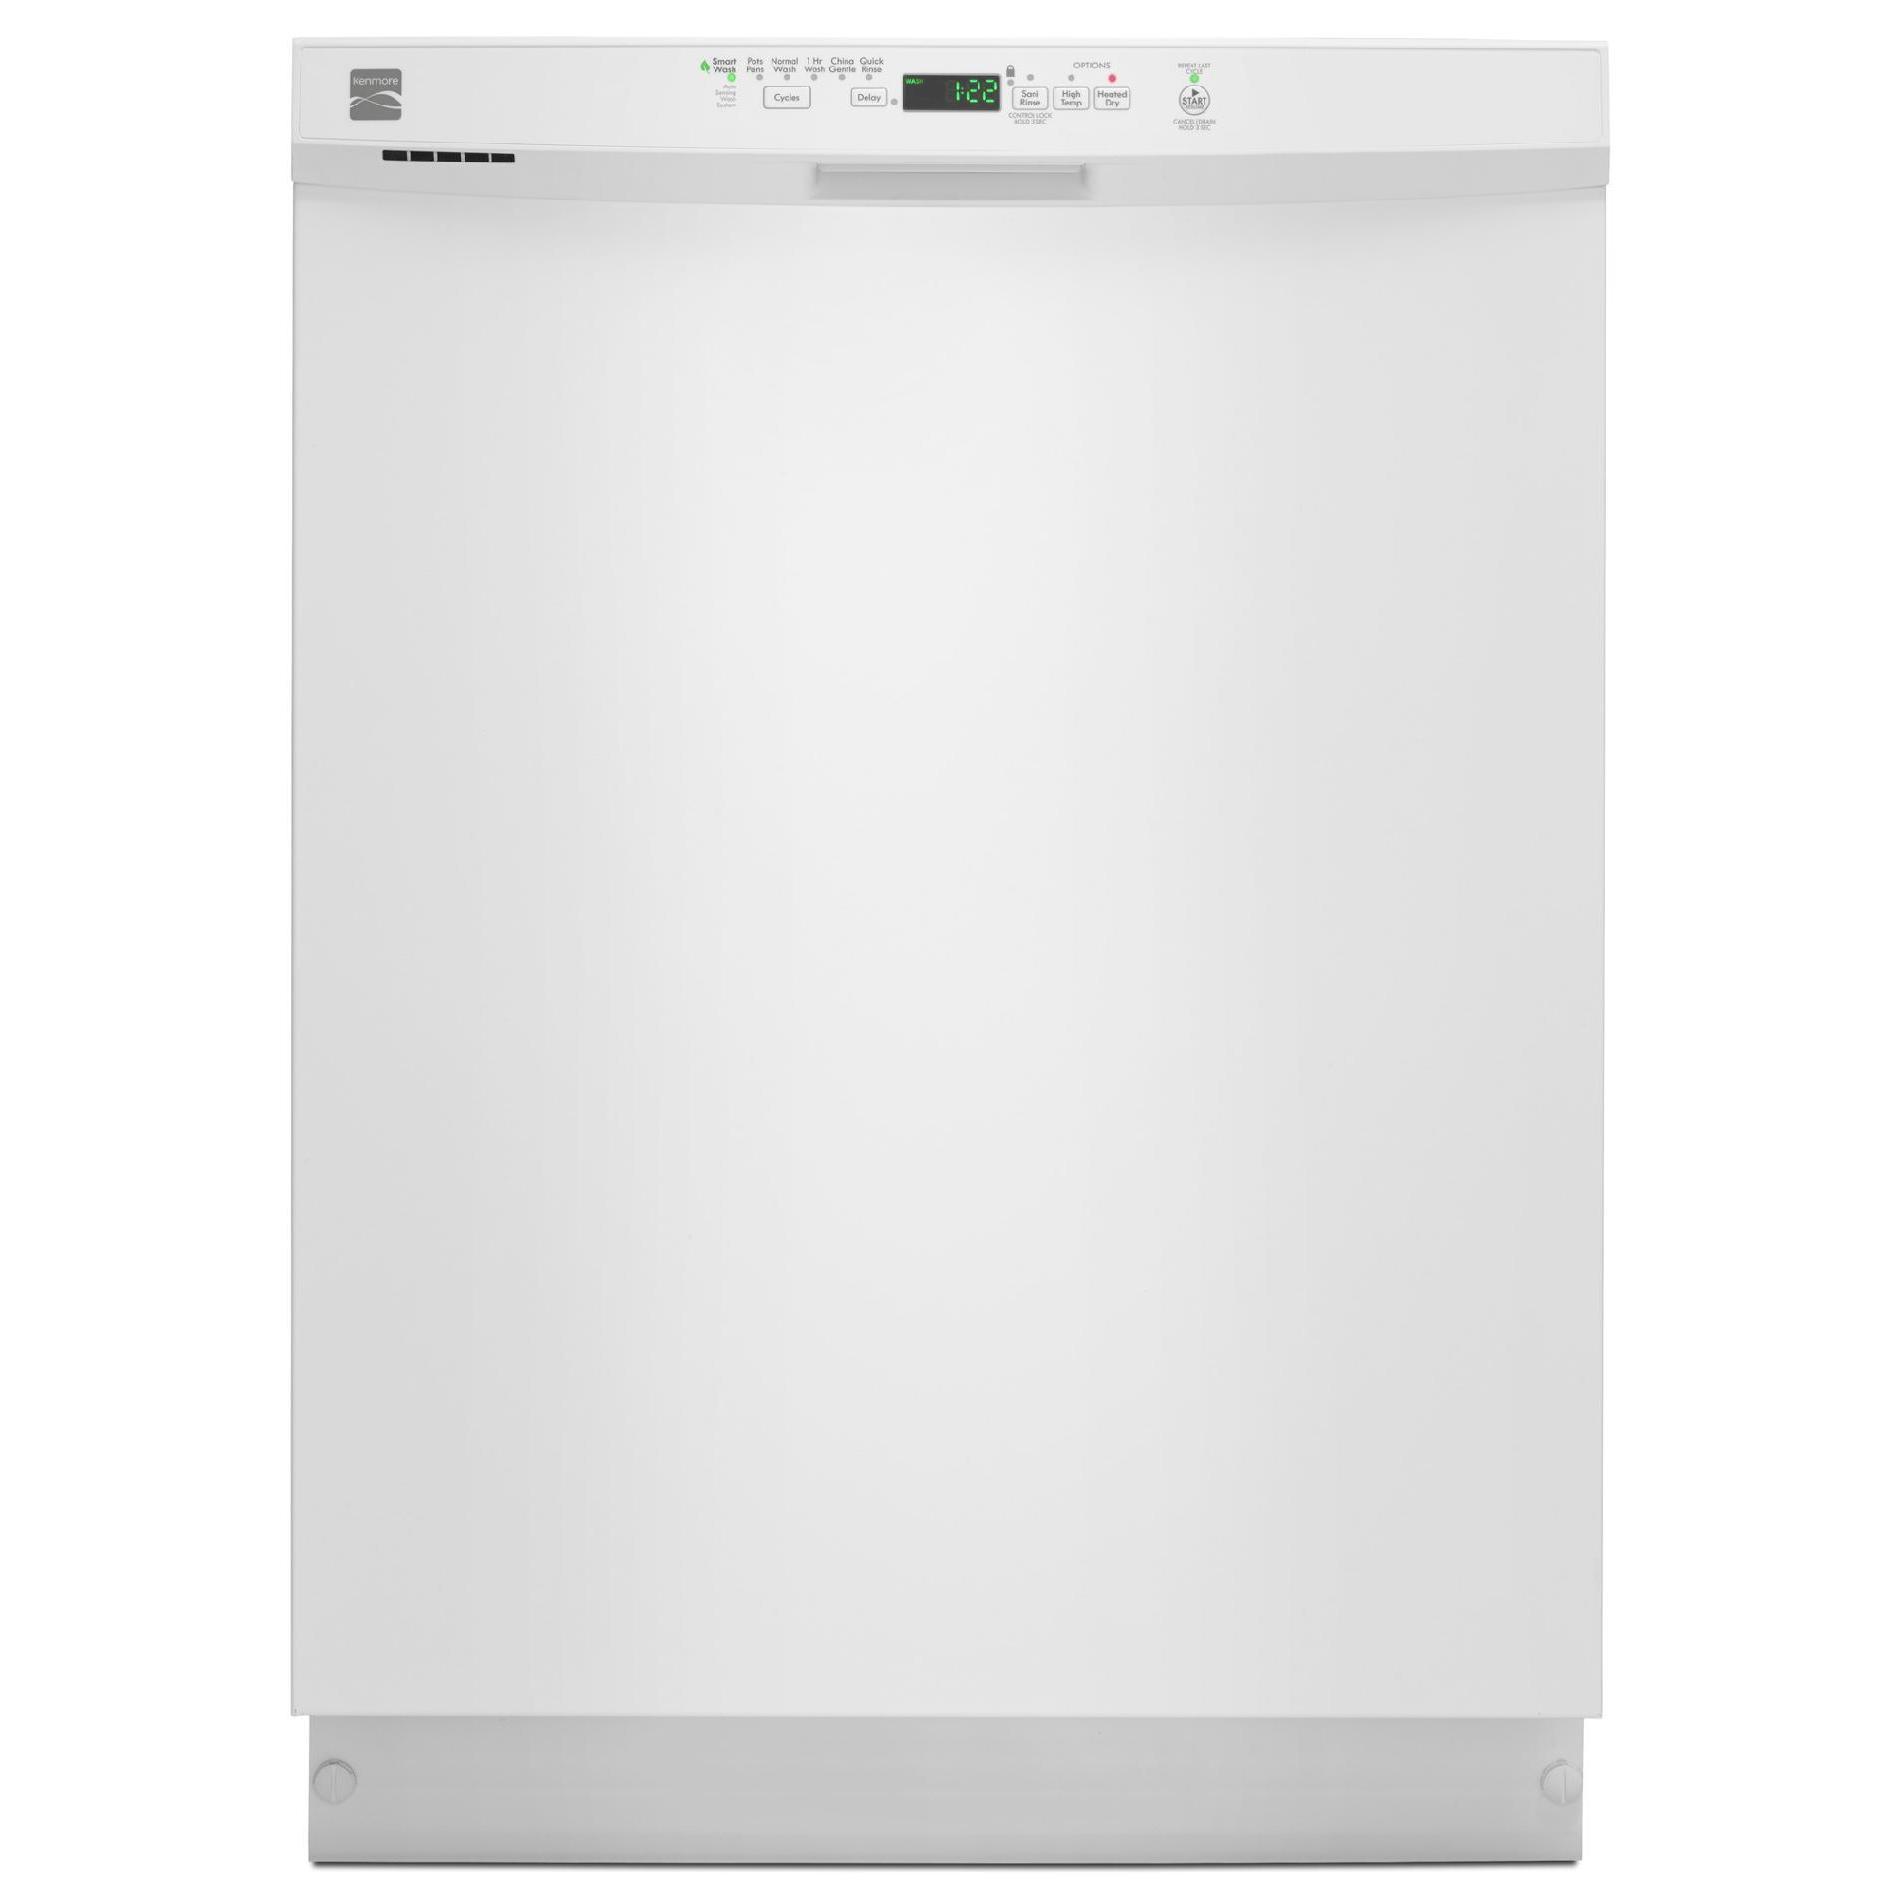 sears kenmore elite dishwasher rh pandarestaurant us